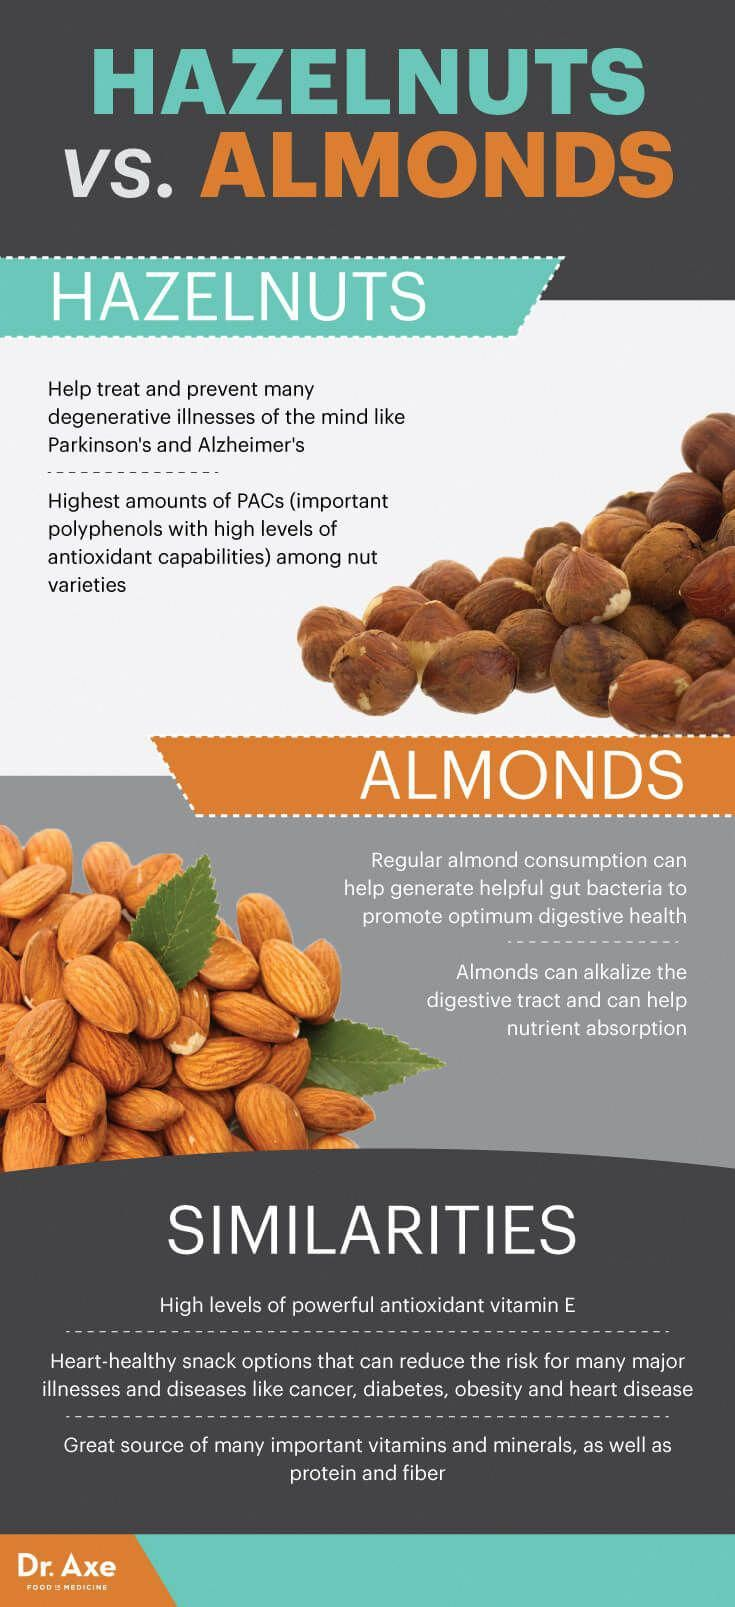 Hazelnuts 7 Benefits Of These Heart Healthy Brain Boosting Nuts Dr Axe Hazelnut Benefits Hazelnut Nutrition Coconut Health Benefits